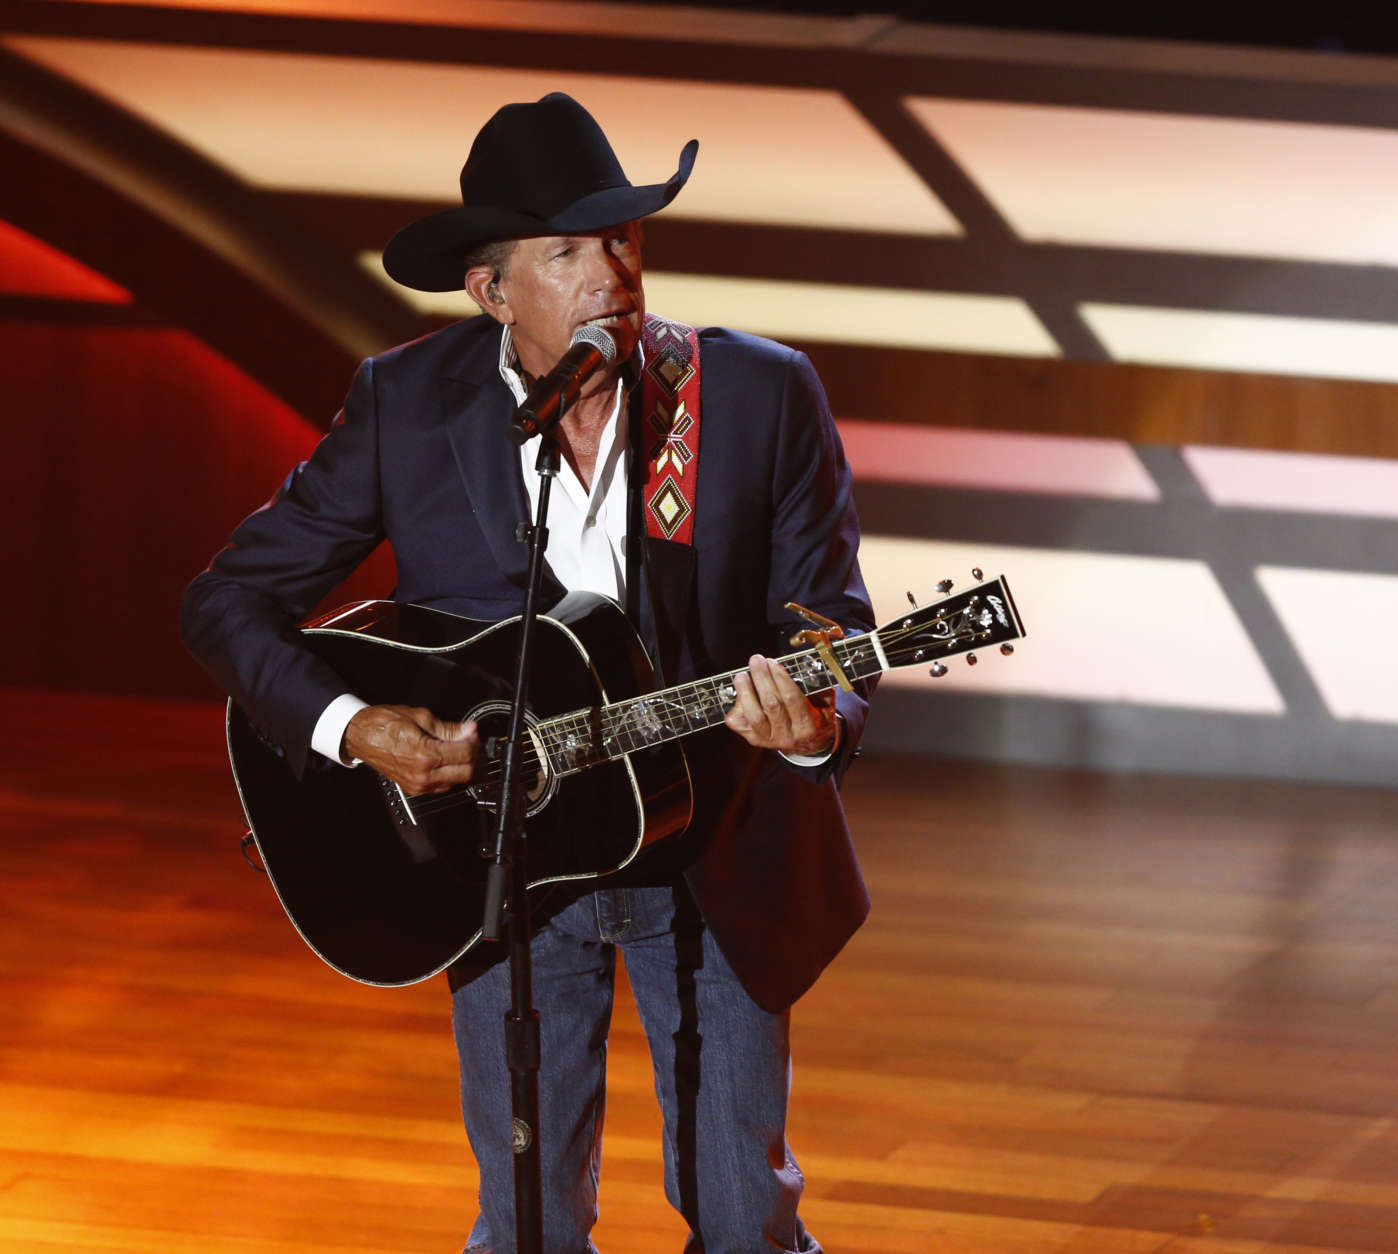 George Strait performs during the 11th annual ACM Honors at the Ryman Auditorium on Wednesday, Aug. 23, 2017, in Nashville, Tenn. (Photo by Wade Payne/Invision/AP)